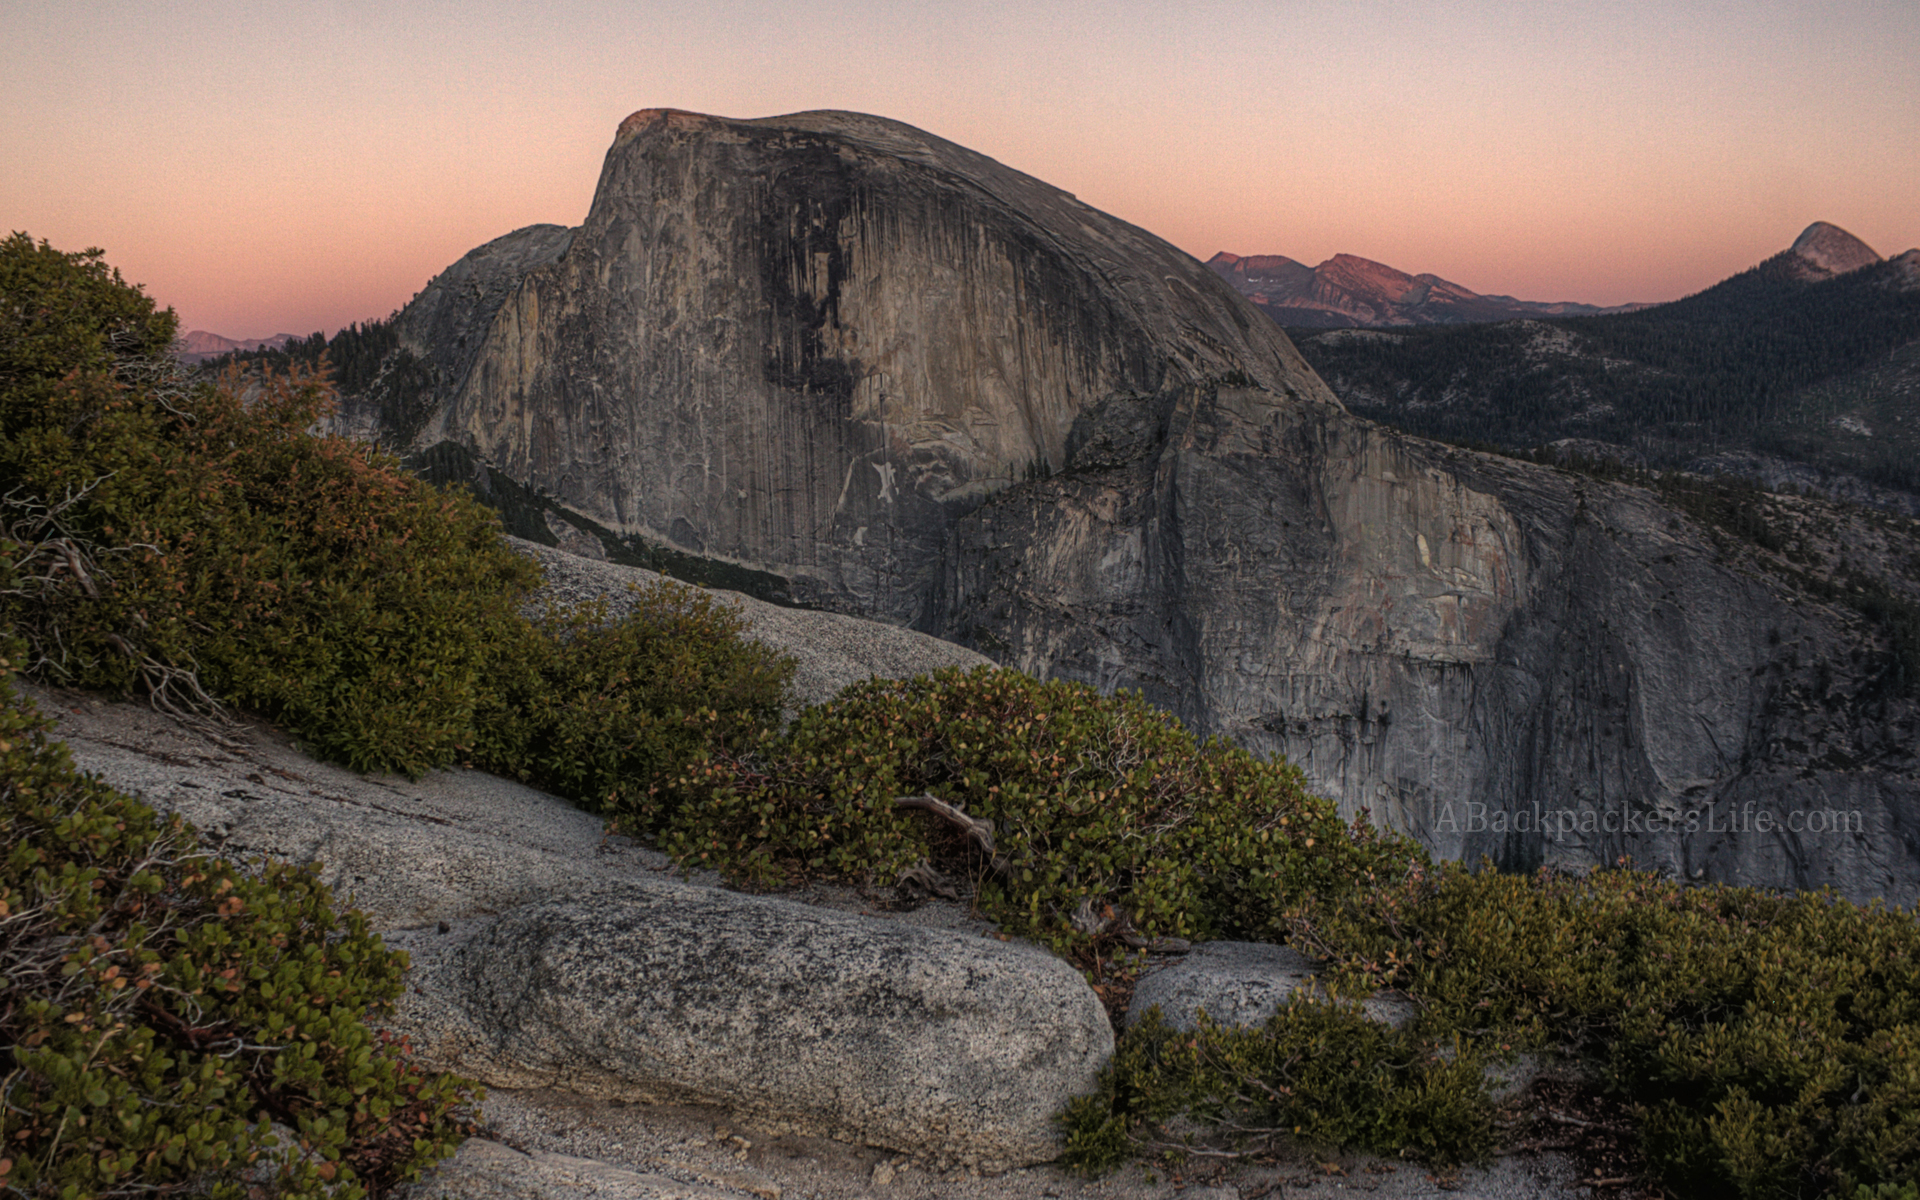 The Sunset and Half Dome